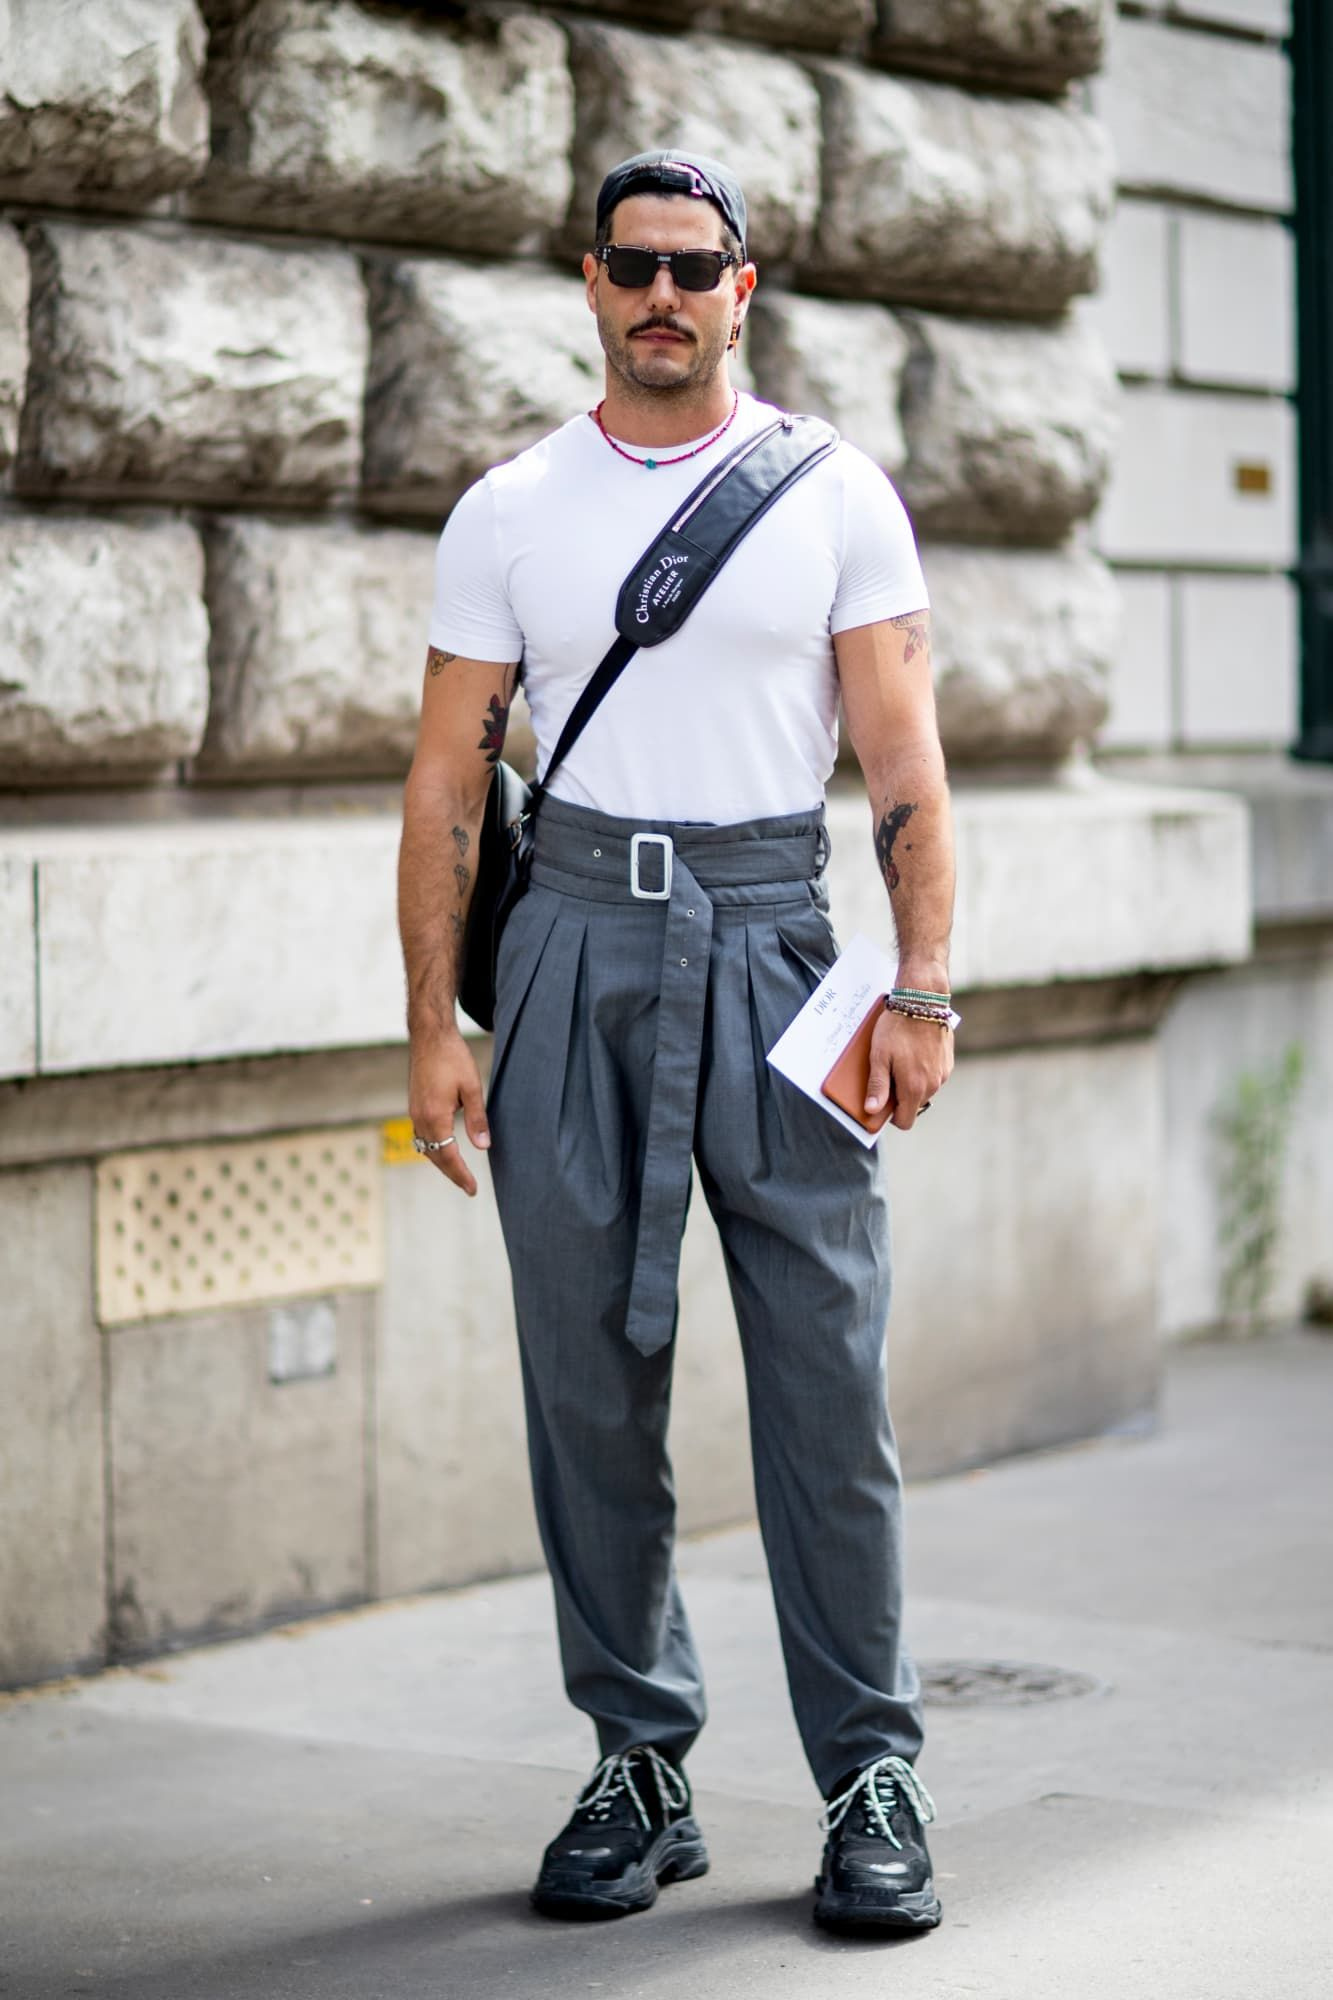 Suits With Sneakers Was the Outfit of Choice at Paris Fashion Week Men's #men'sfashion